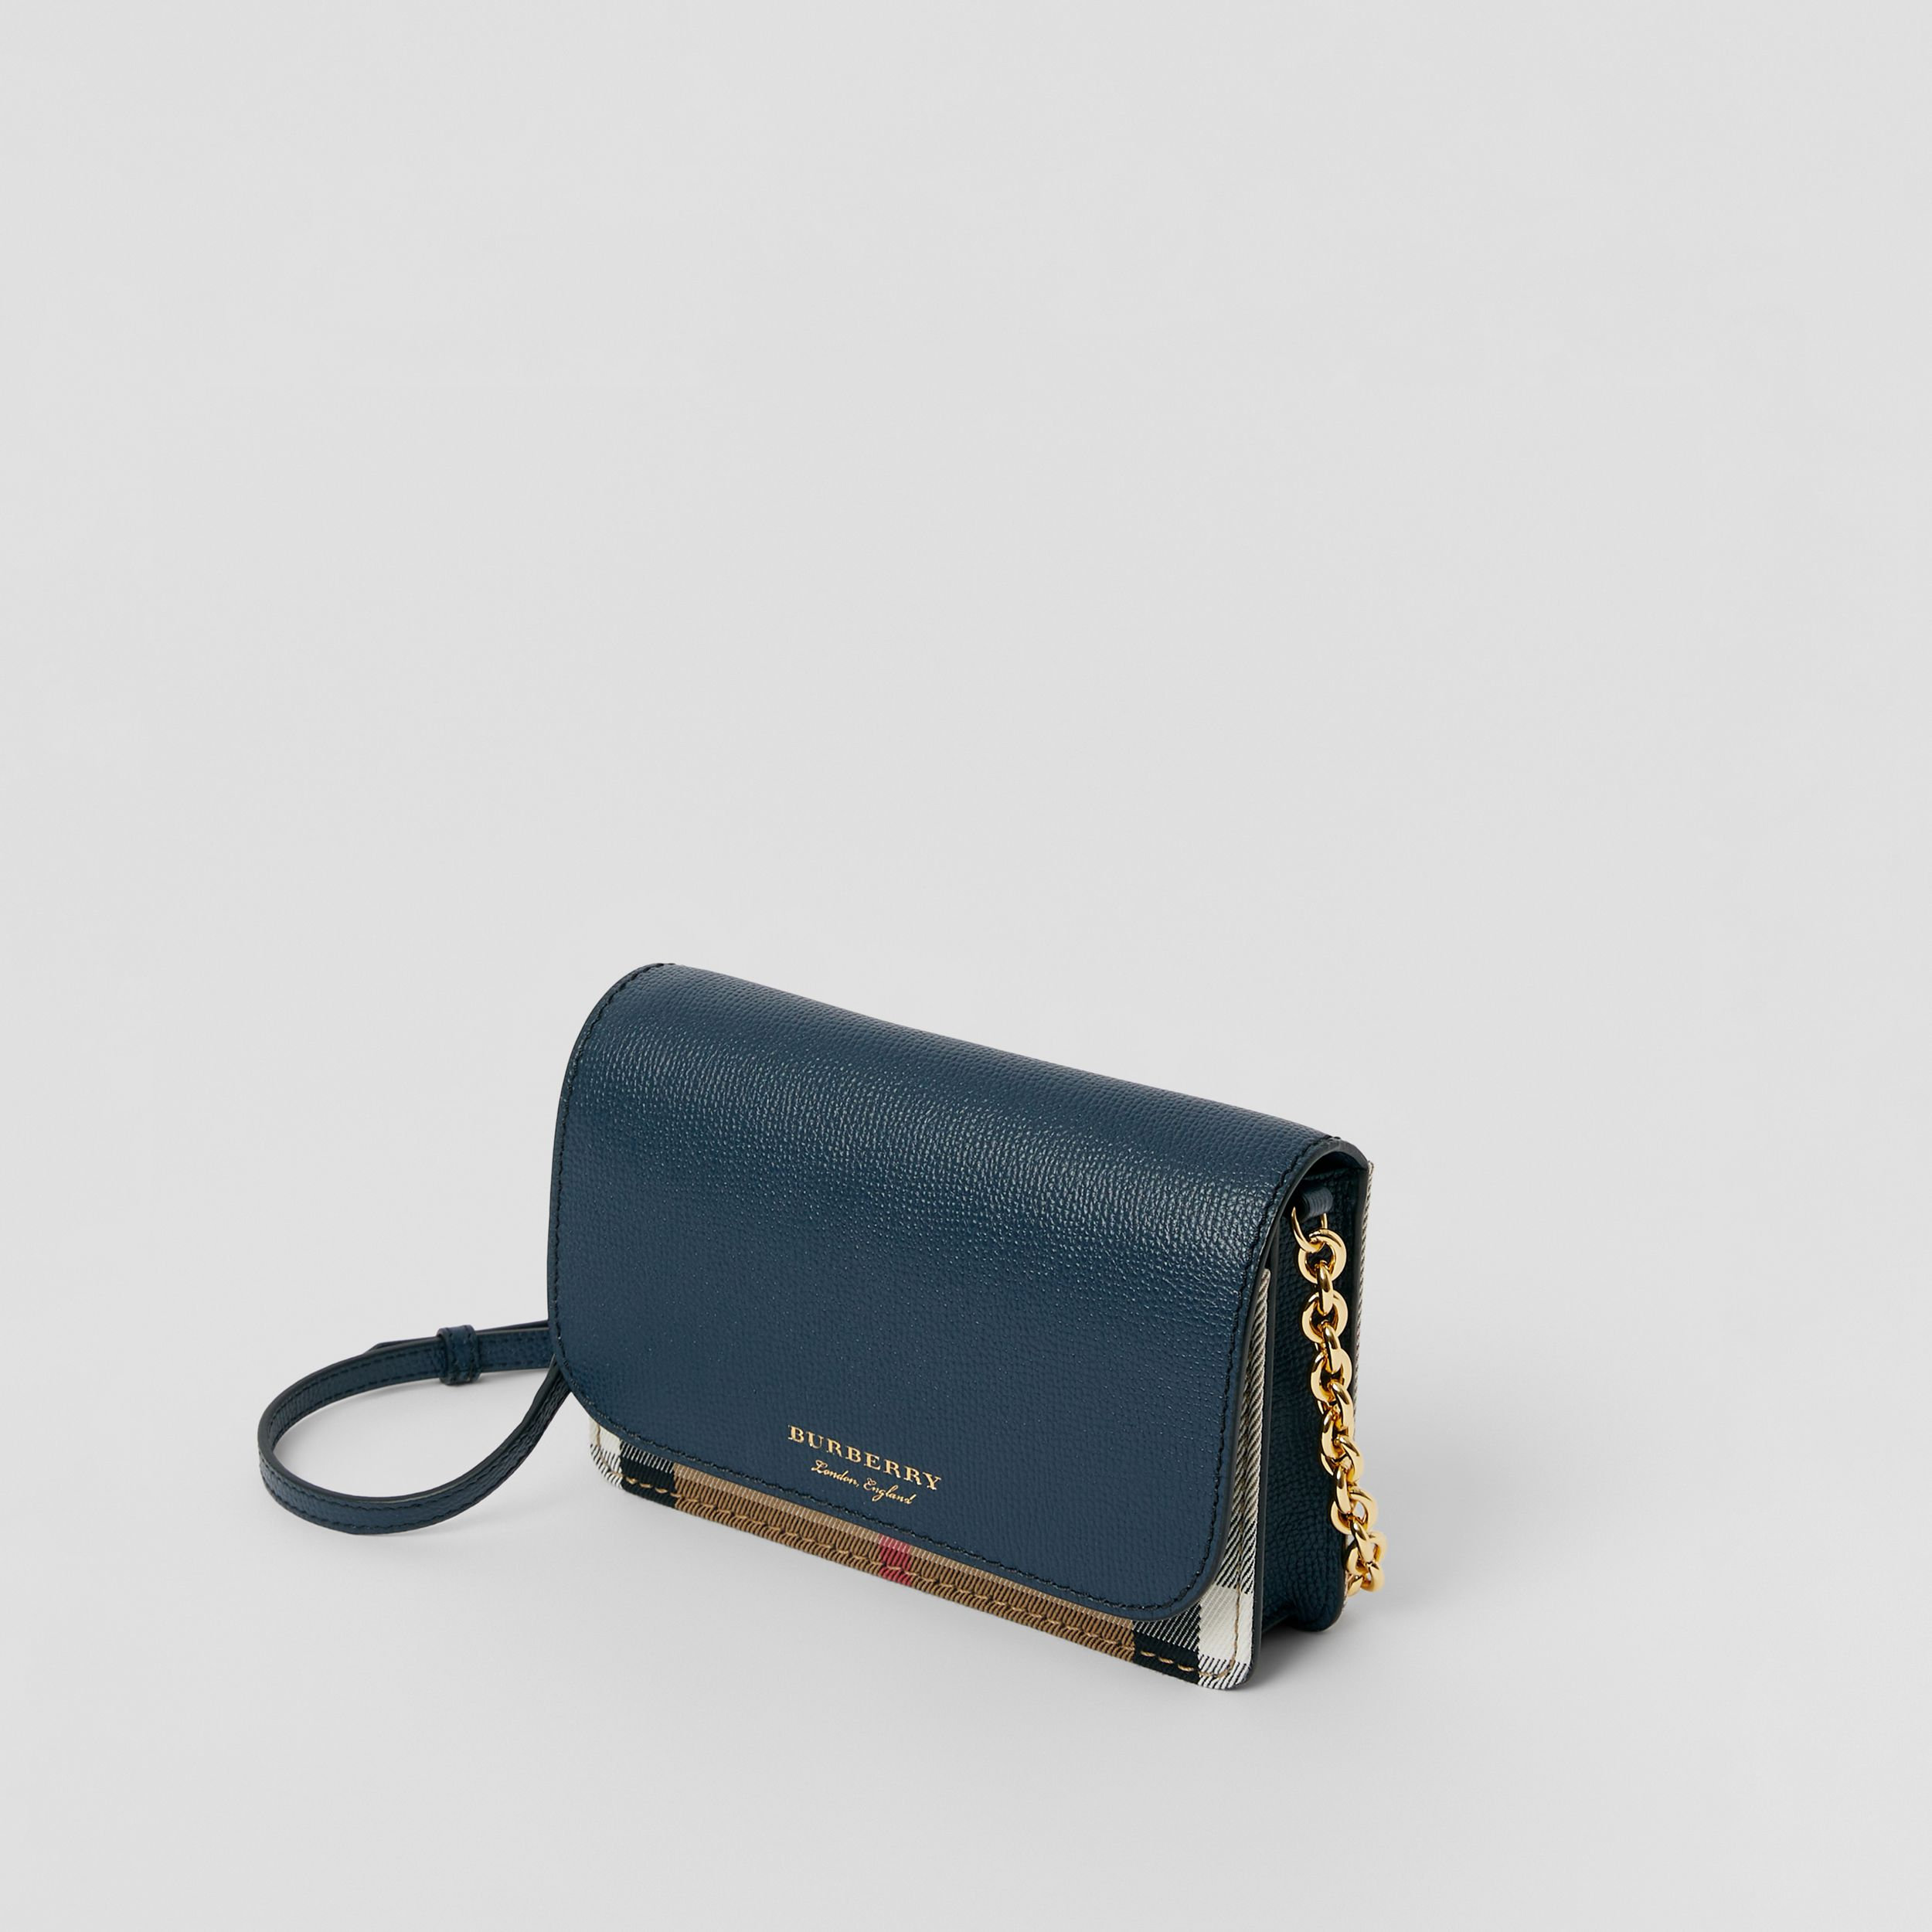 Small Leather and House Check Crossbody Bag in Ink Blue - Women | Burberry - 3